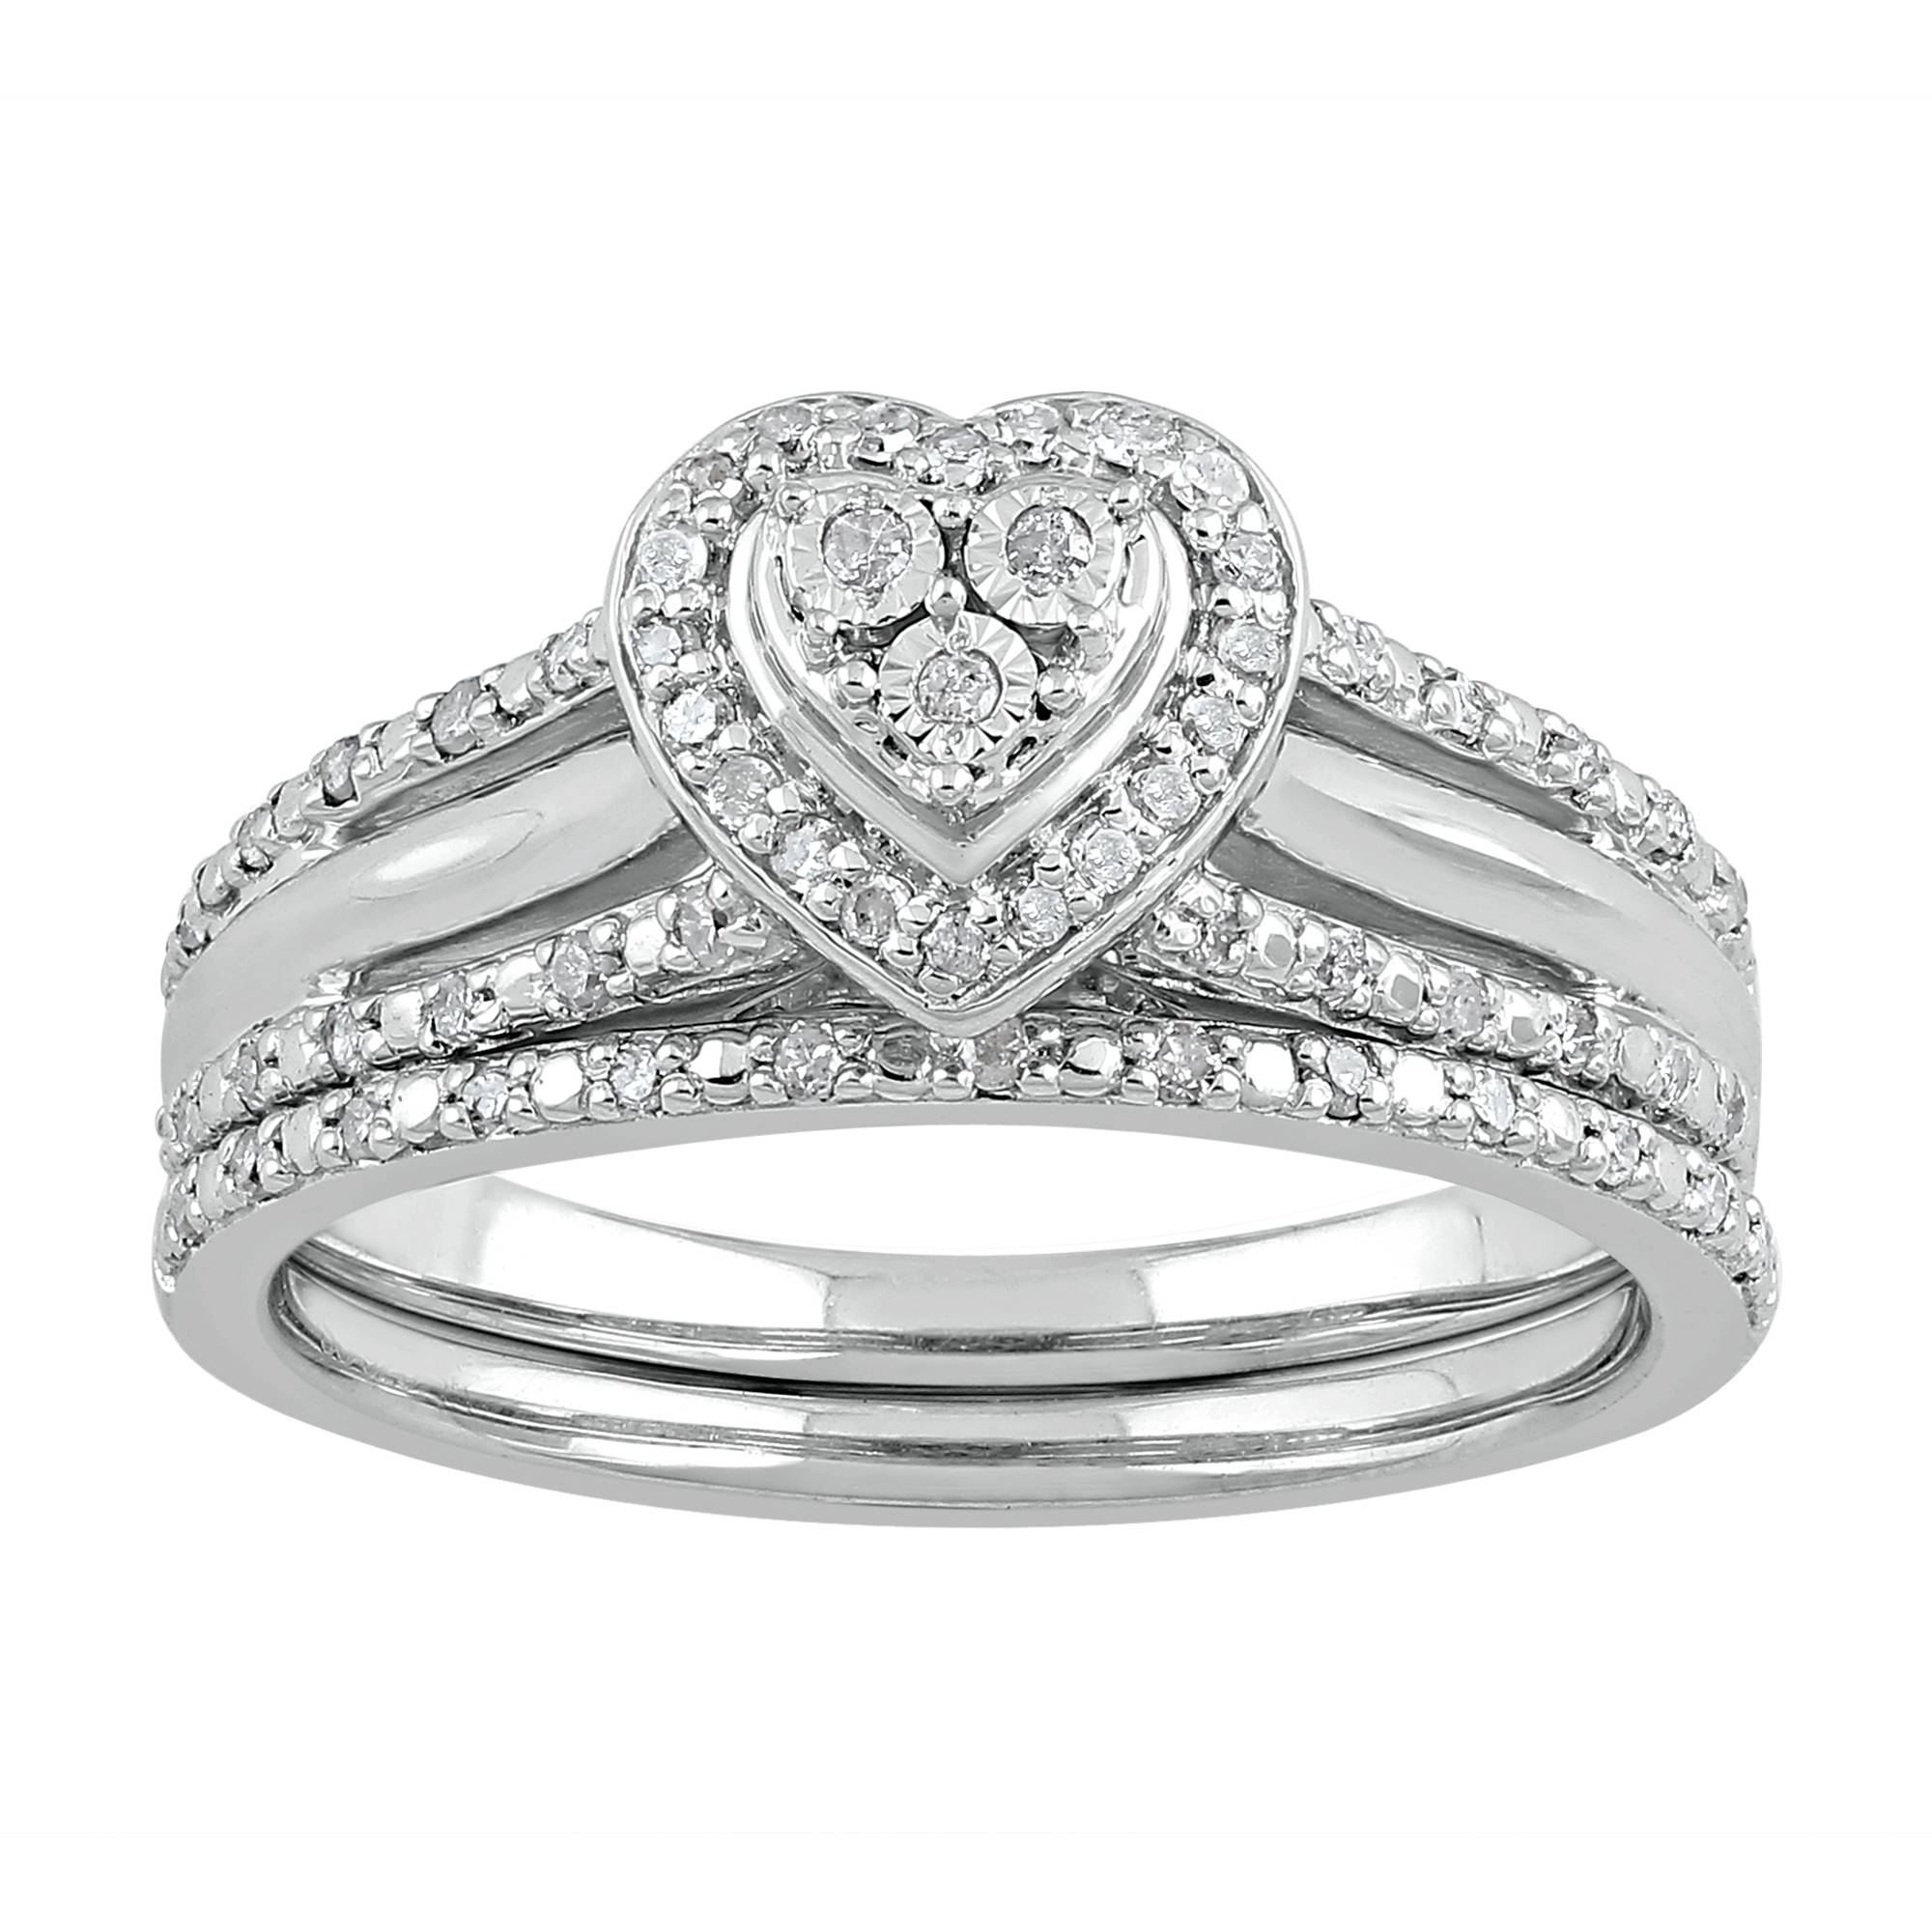 Forever Bride 1 4 Carat T W Heart Sterling Silver Bridal Set